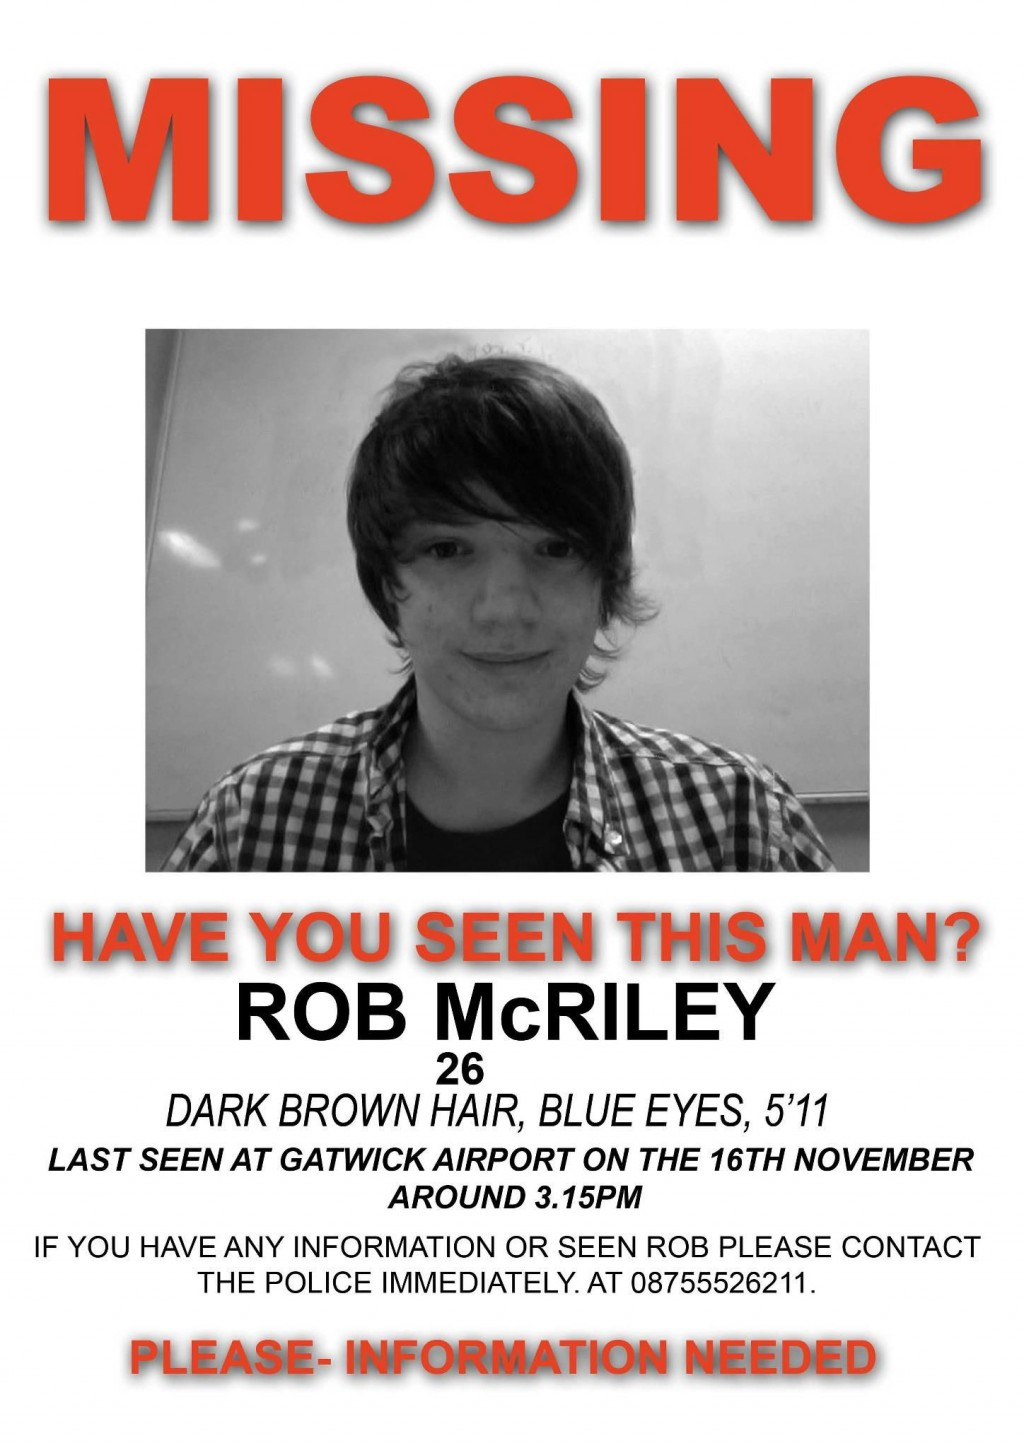 002 Dreaded Missing Person Poster Template Word Inspiration Large